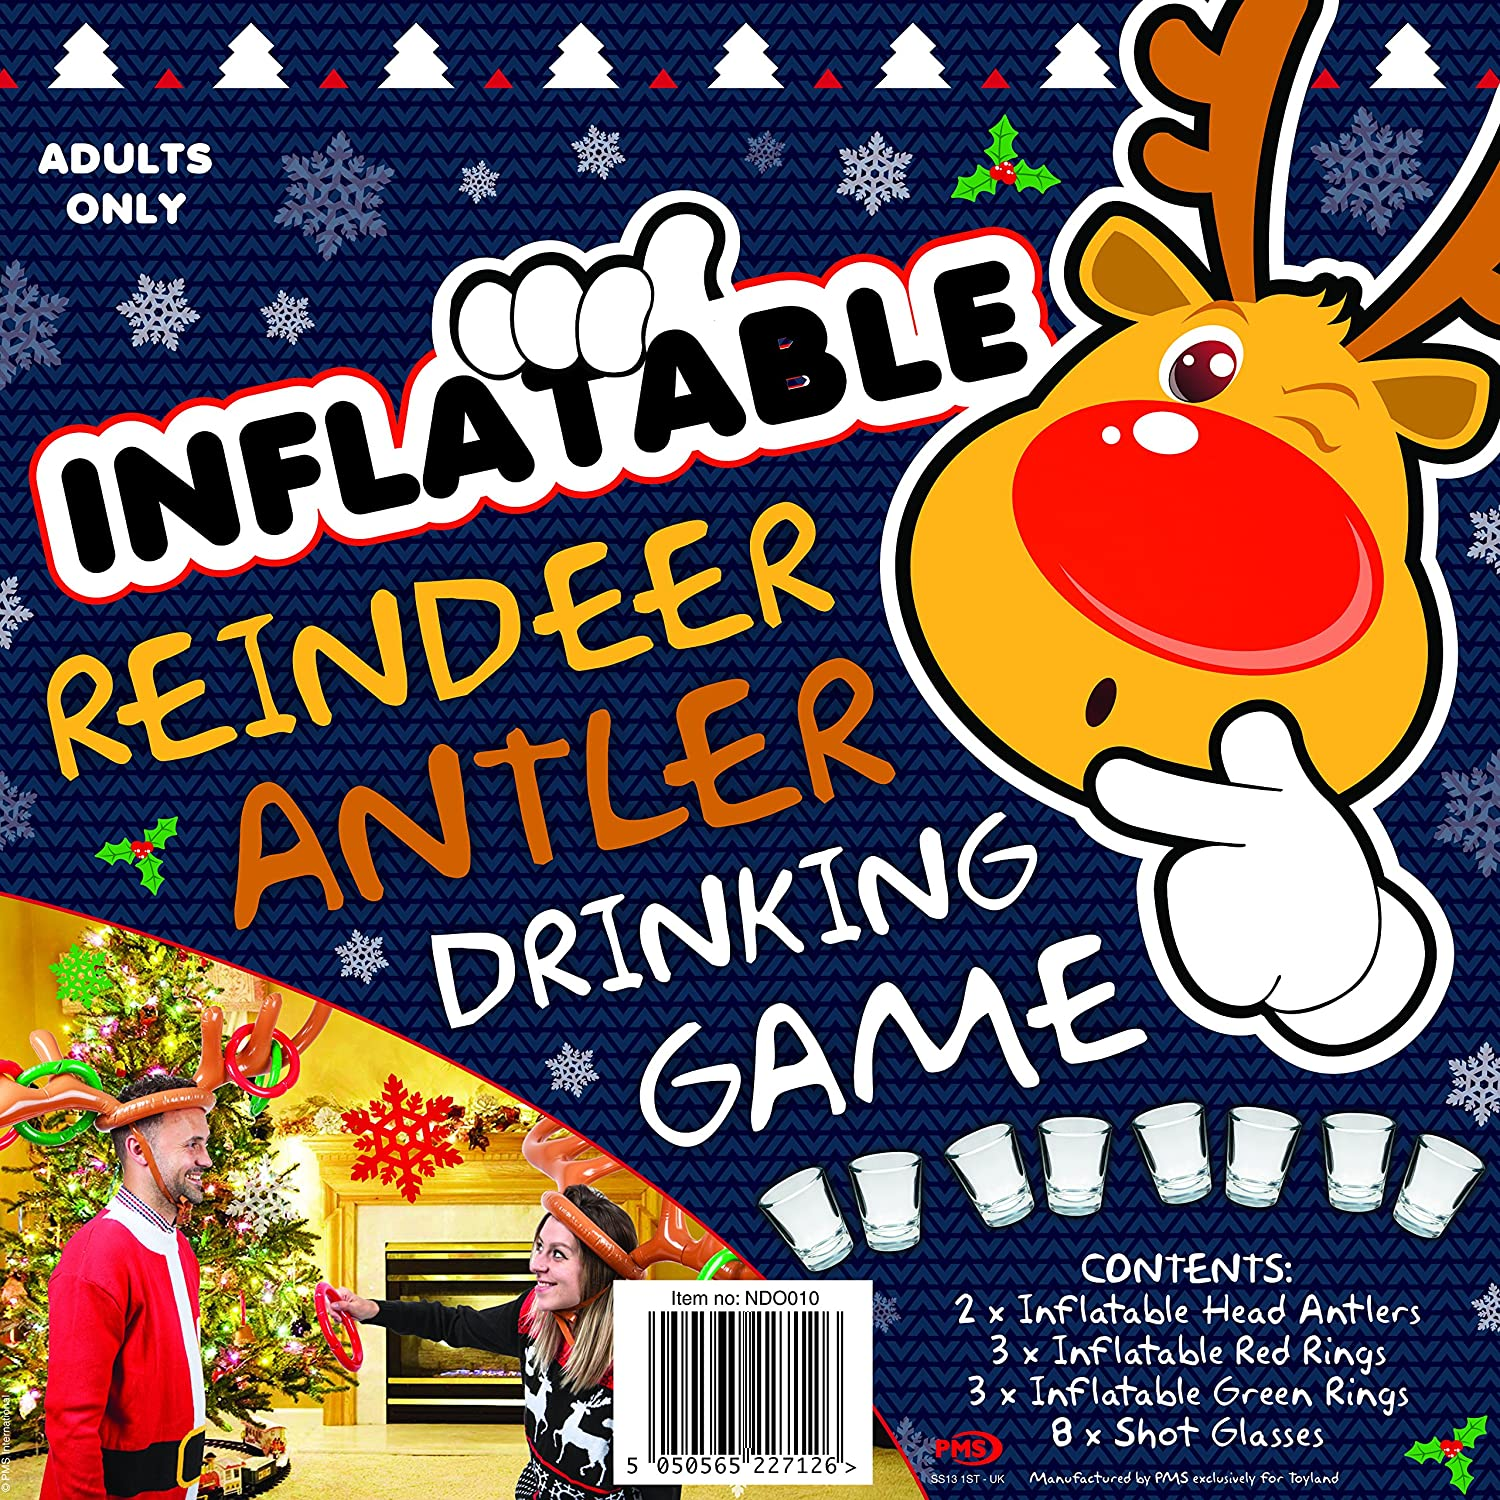 Amazon Com Inflatable Reindeer Antlers Drinking Game Christmas Party Games Stocking Fillers Toys Games